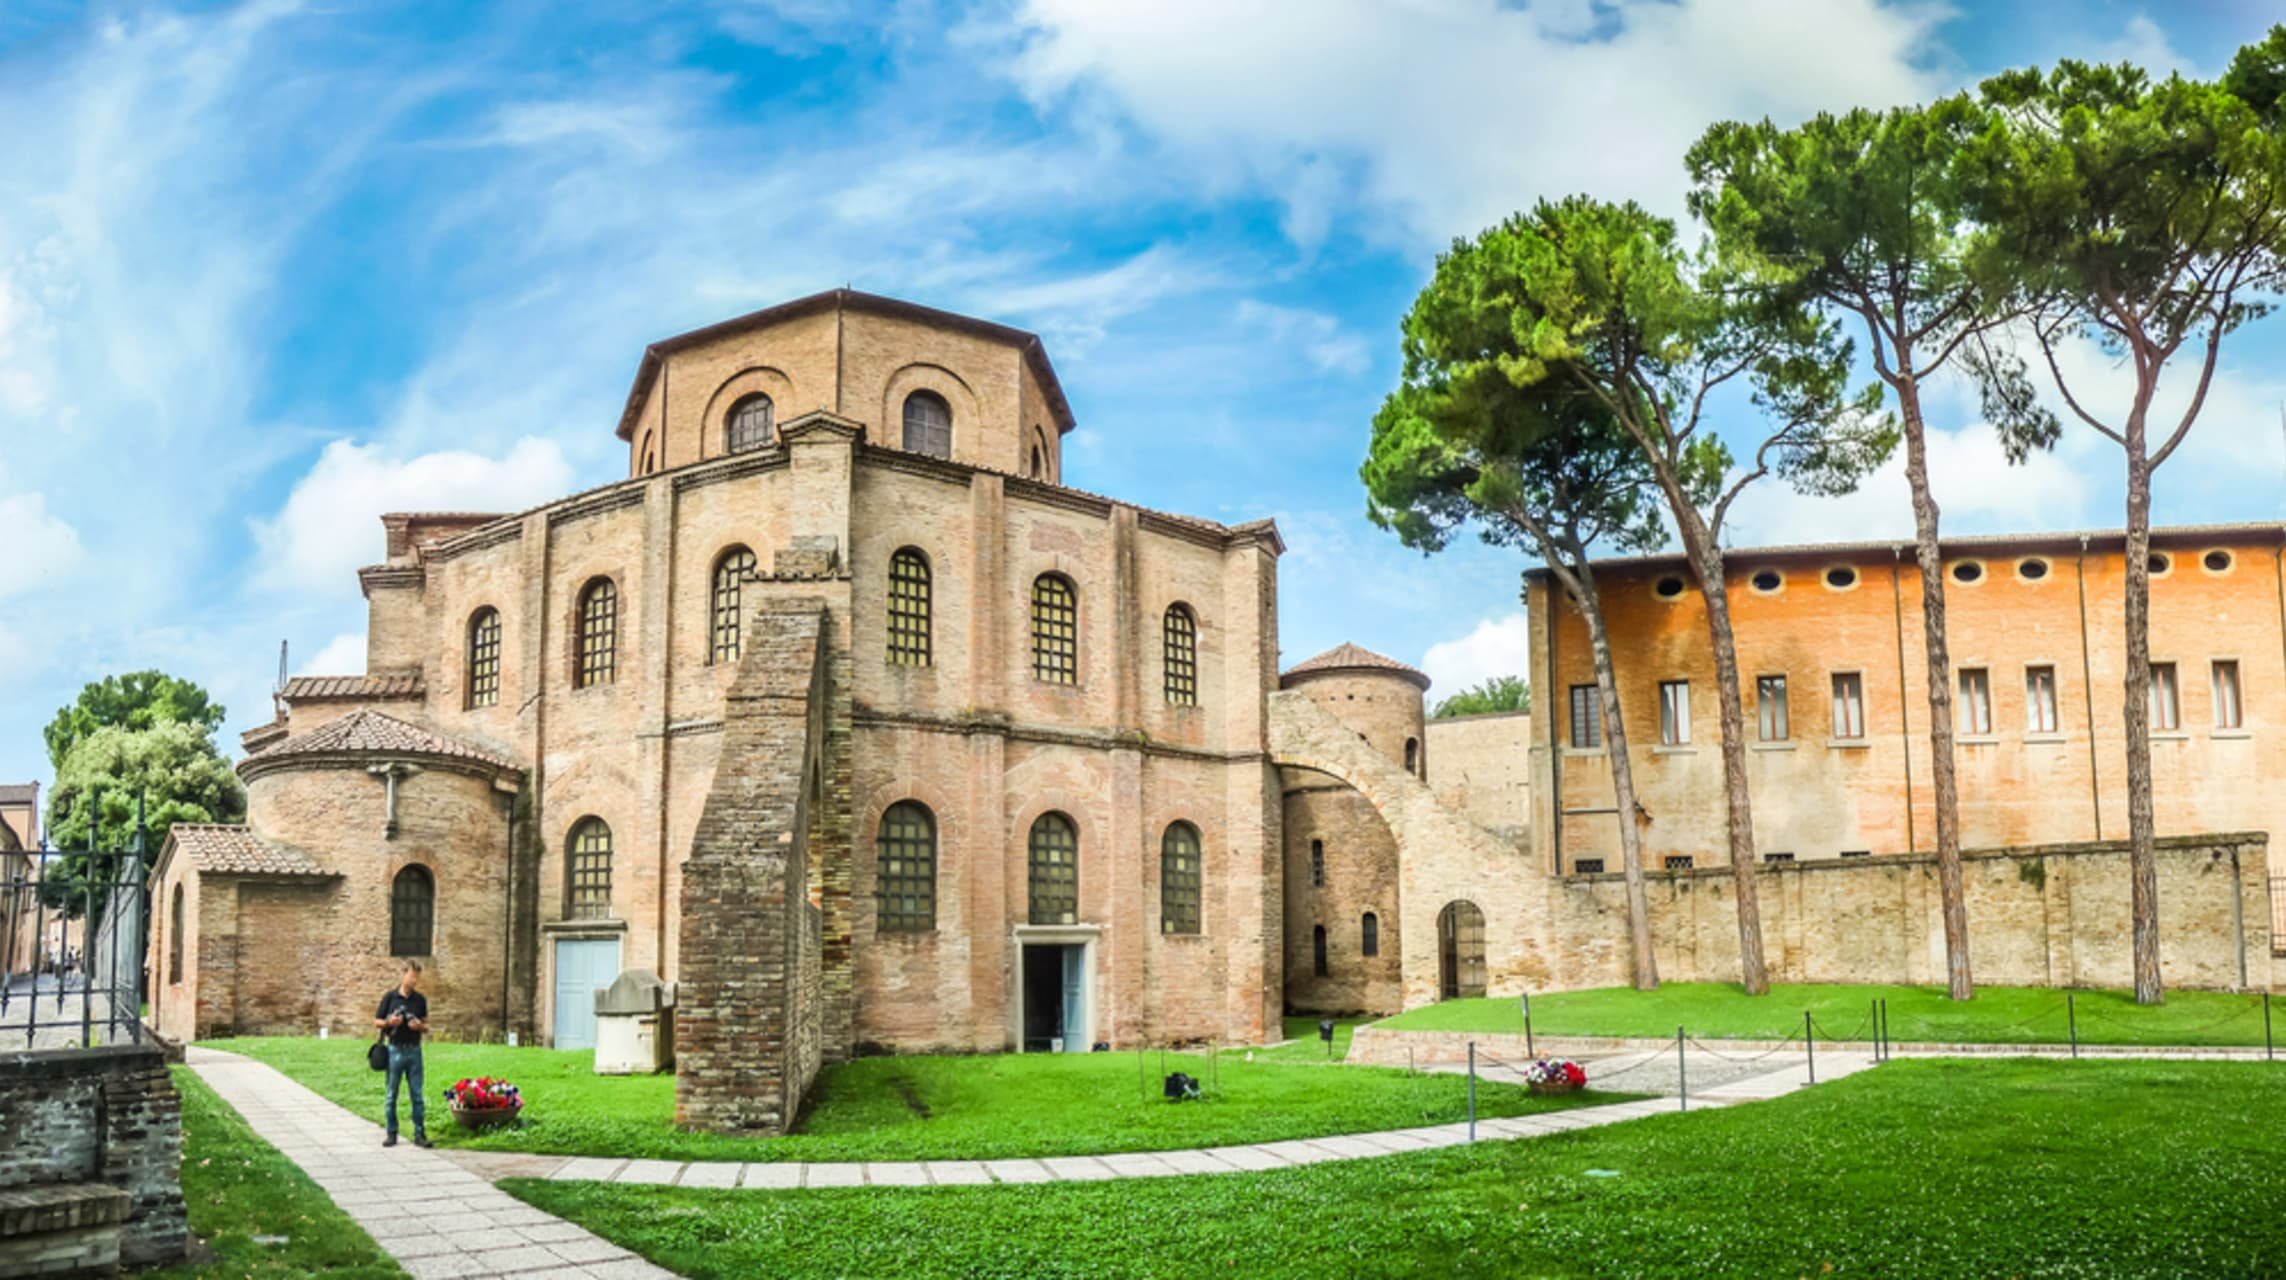 Ravenna - Ravenna Part 1: from the Fall of the Roman Empire to Nowadays